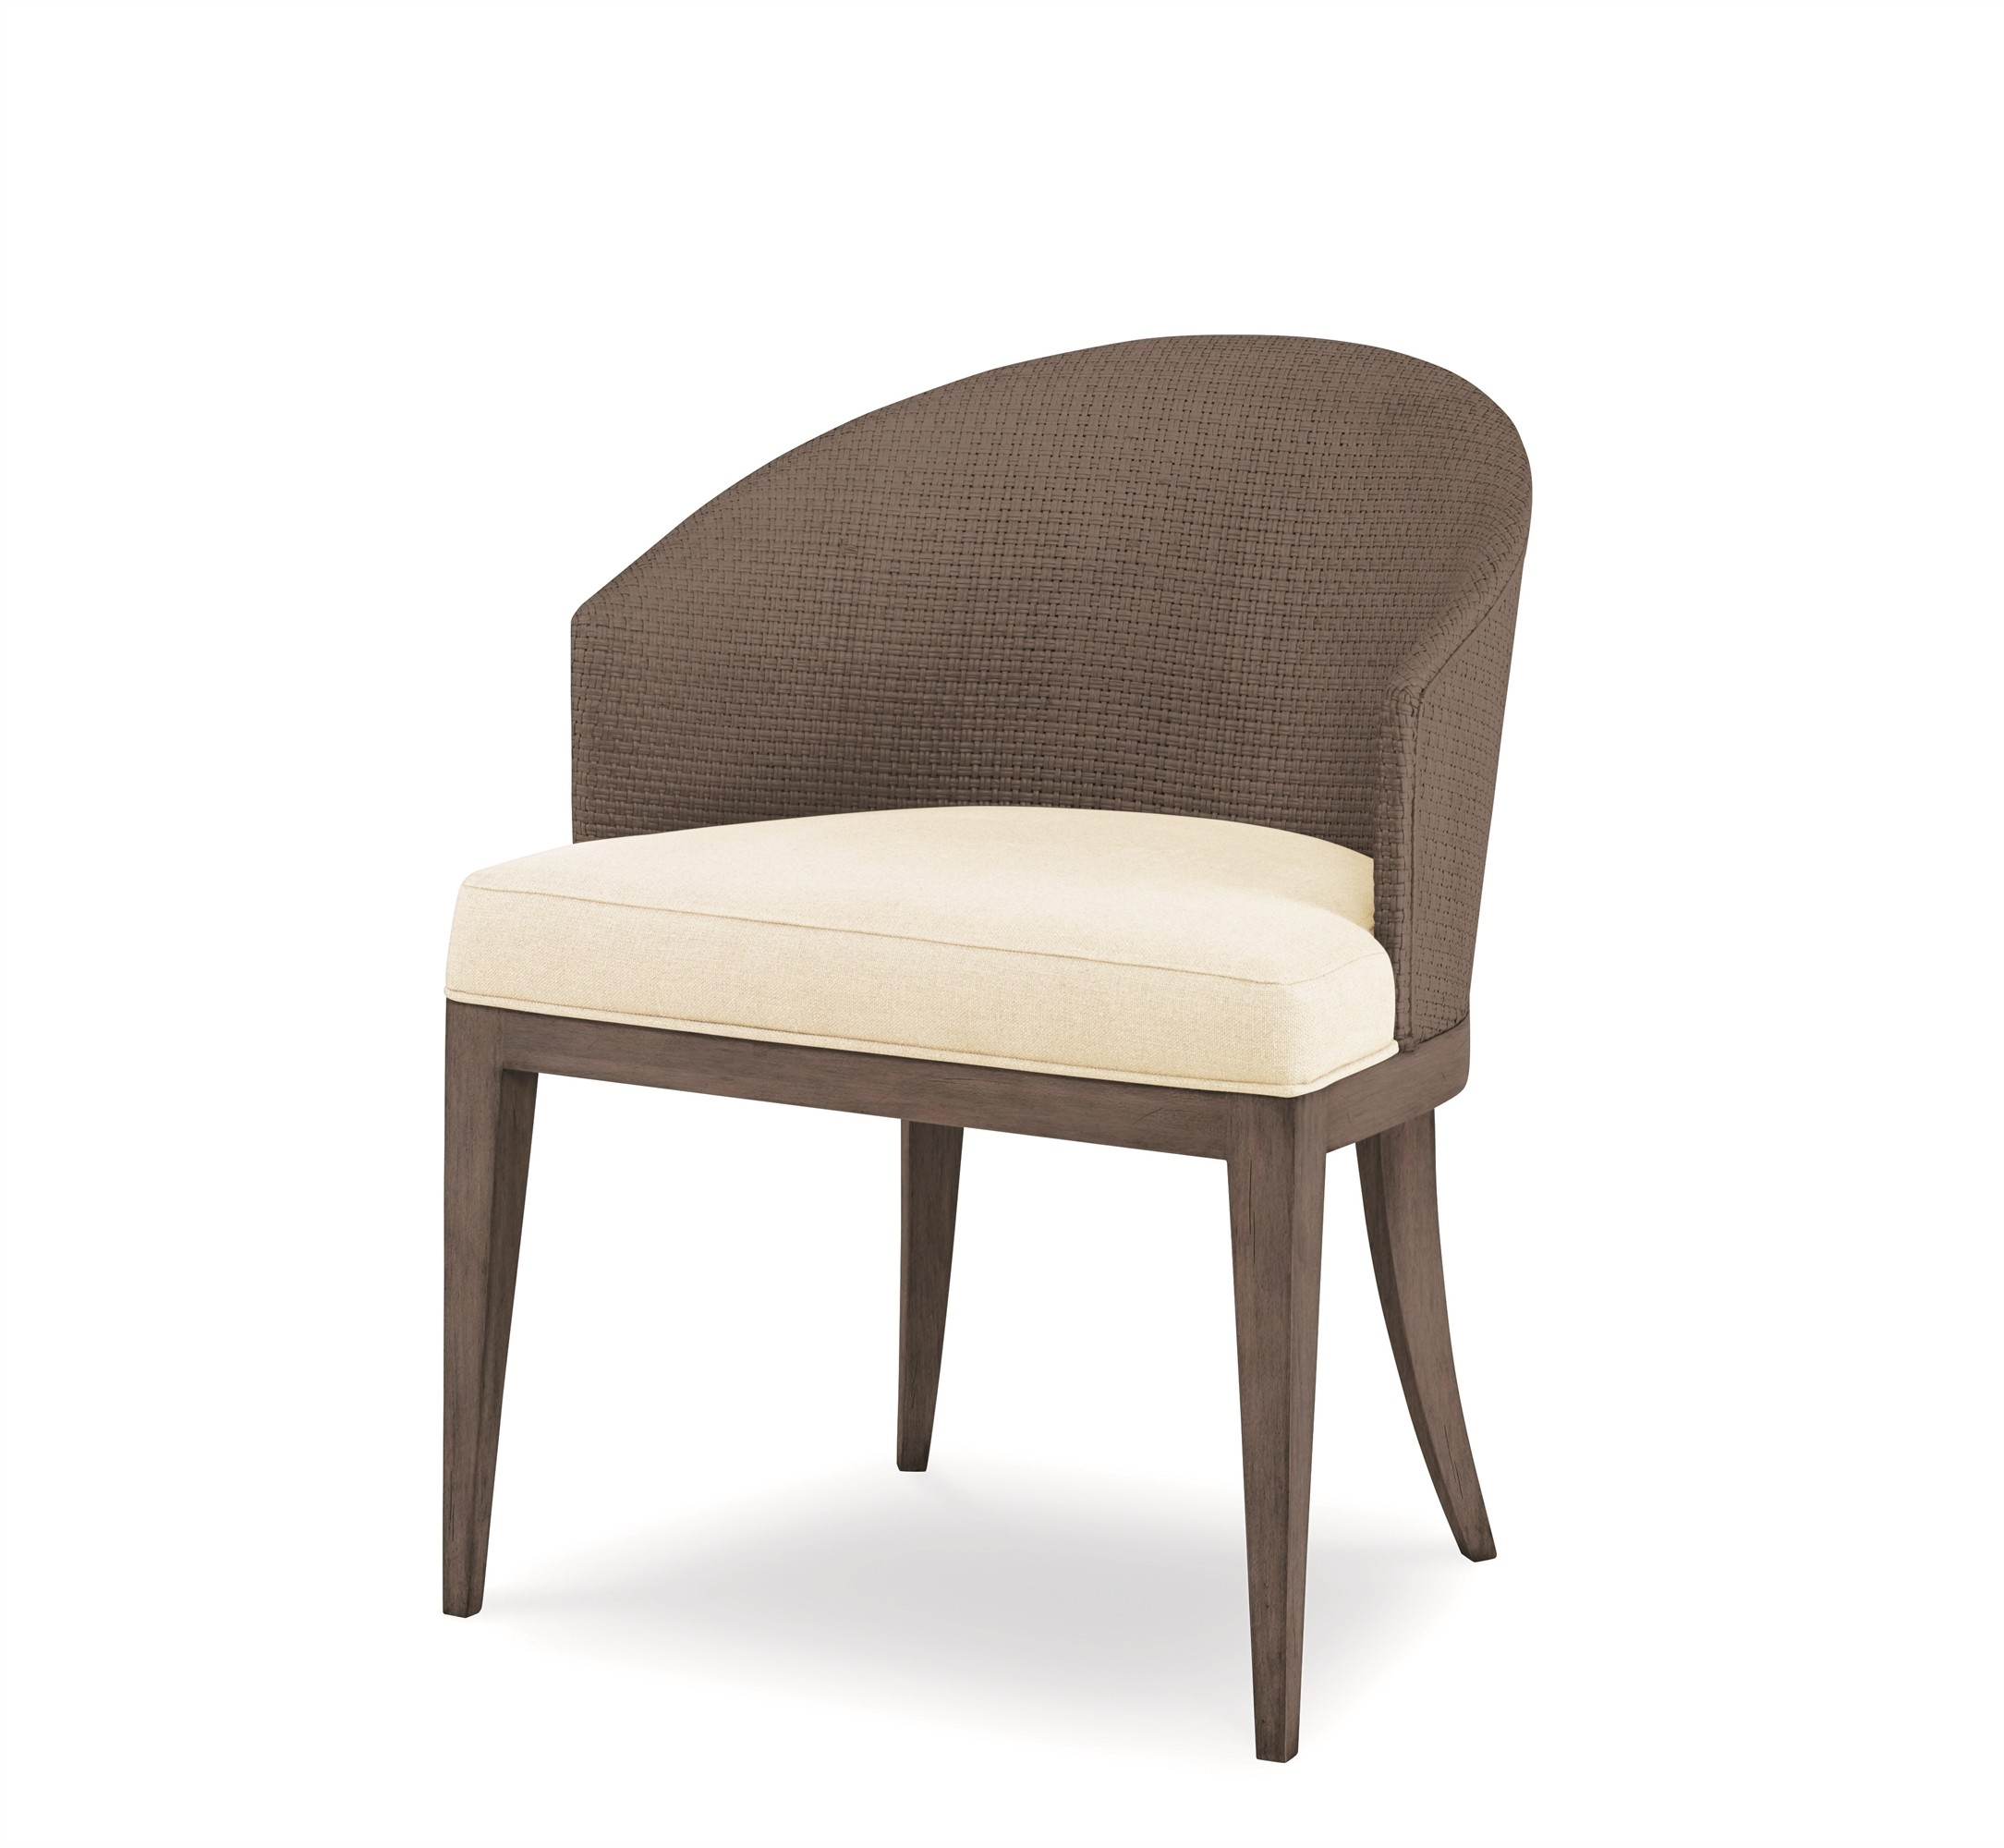 Tybee Chair-Mink Grey/Flax (Lw-050-113-07, C113-050-07)